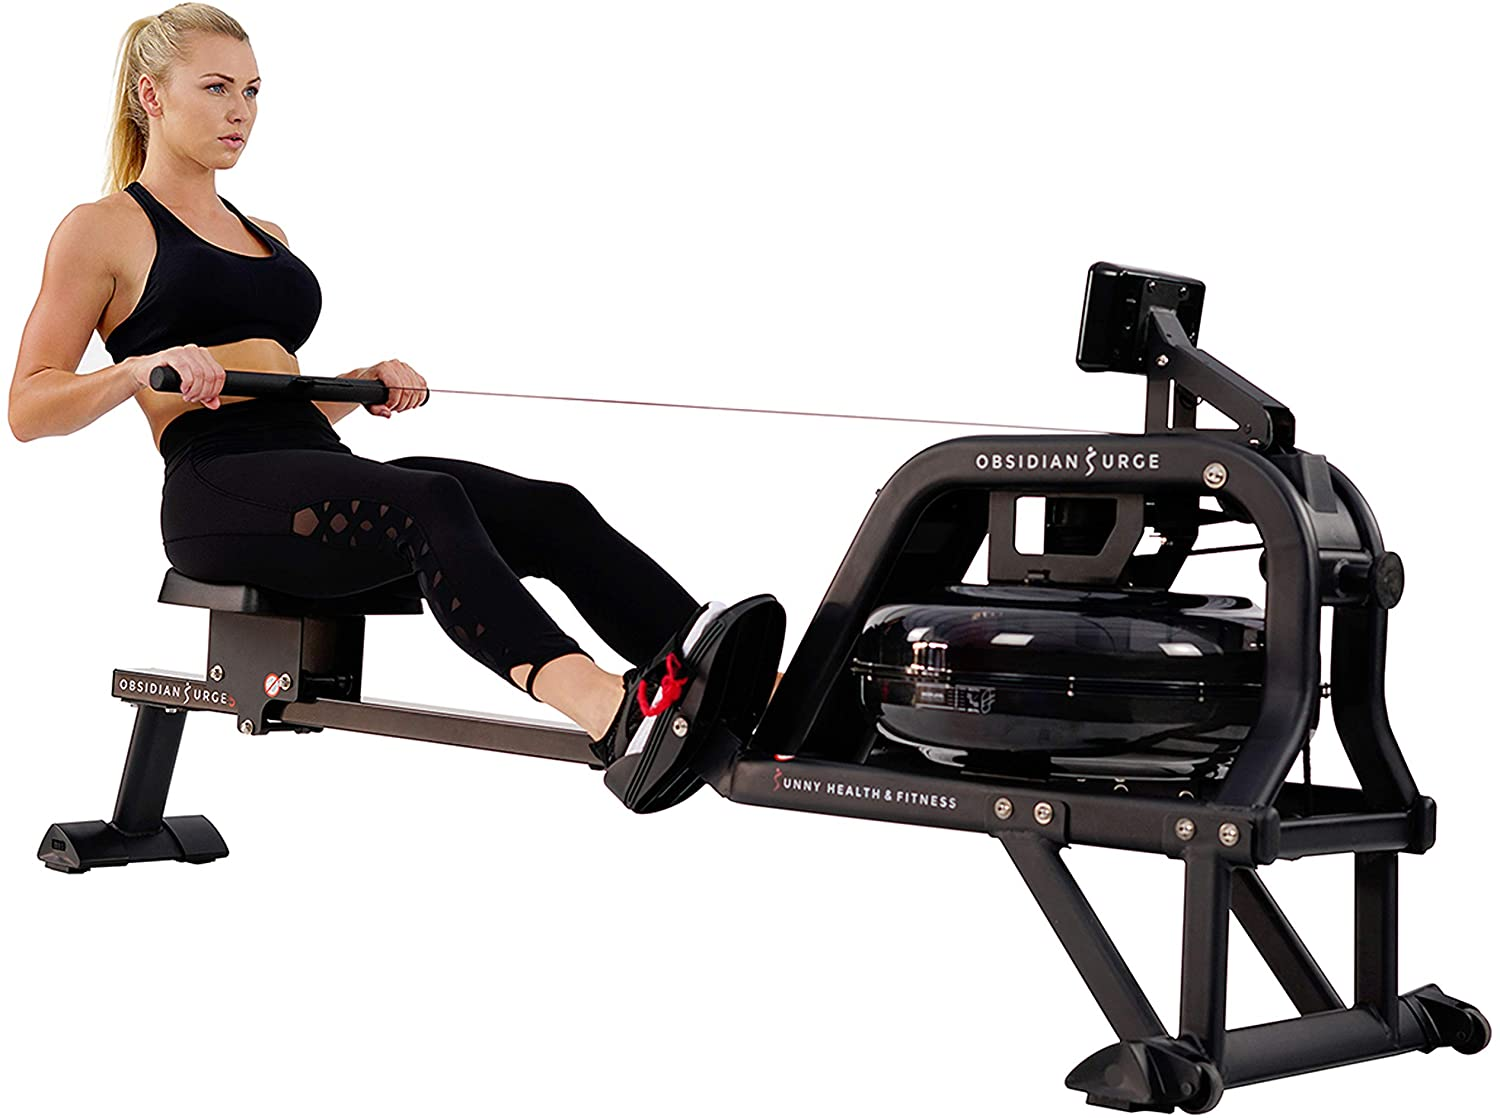 10 best rowing machines for whole body home exercise 2021 herstylecode 1 10 Best Rowing Machines for Whole Body Home Exercise 2021